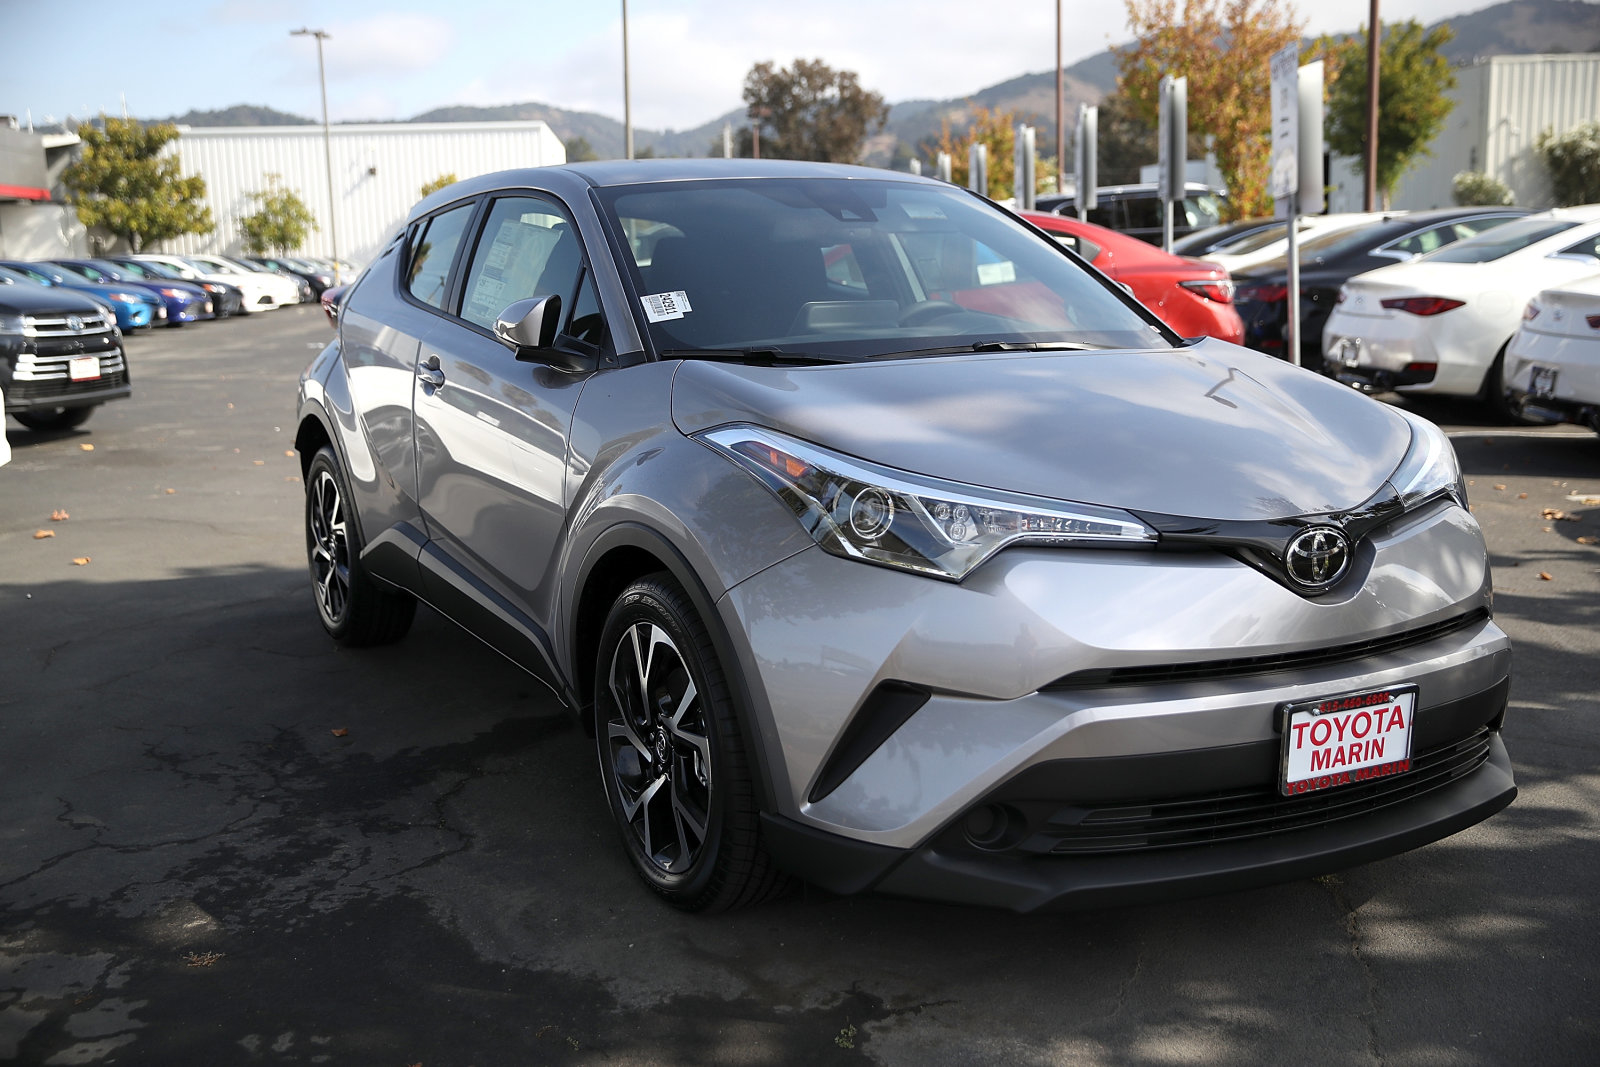 SAN RAFAEL, CA - SEPTEMBER 05:  A brand new non-hybrid version of the Toyota C-HR is displayed on a sales lot at Toyota Marin on September 5, 2018 in San Rafael, California.  Toyota annouced plans to recall over one million Prius and C-HR crossover sport-utility vehicles globally to fix an electrical system issue that could cause a fire. The vehicles affected by the recall are certain 2016-2018 Prius cars, Prius Prime plug-in hybrids and hybrid versions of the C-HR. Nearly 200,000 Prius cars in the United States will be affected.  (Photo by Justin Sullivan/Getty Images)